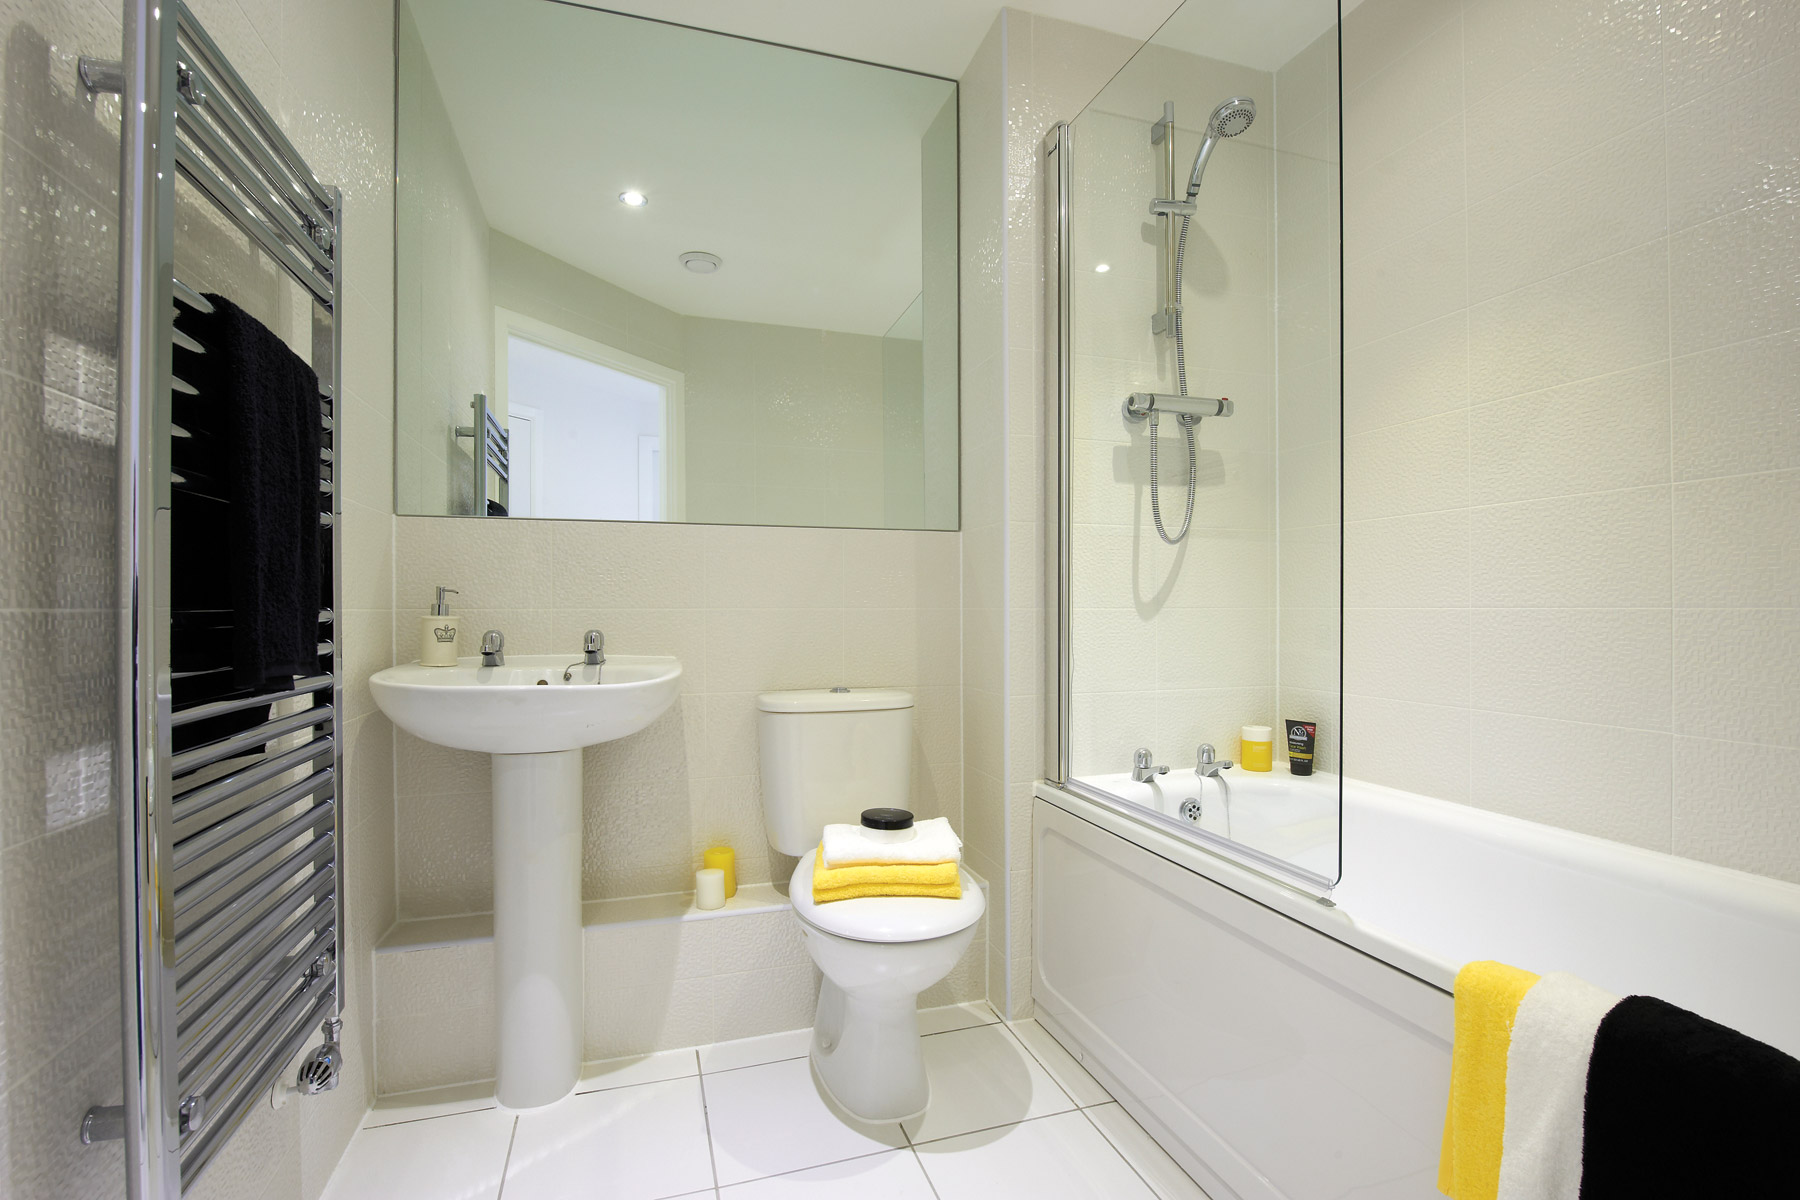 A typical Taylor Wimpey apartment bathroom